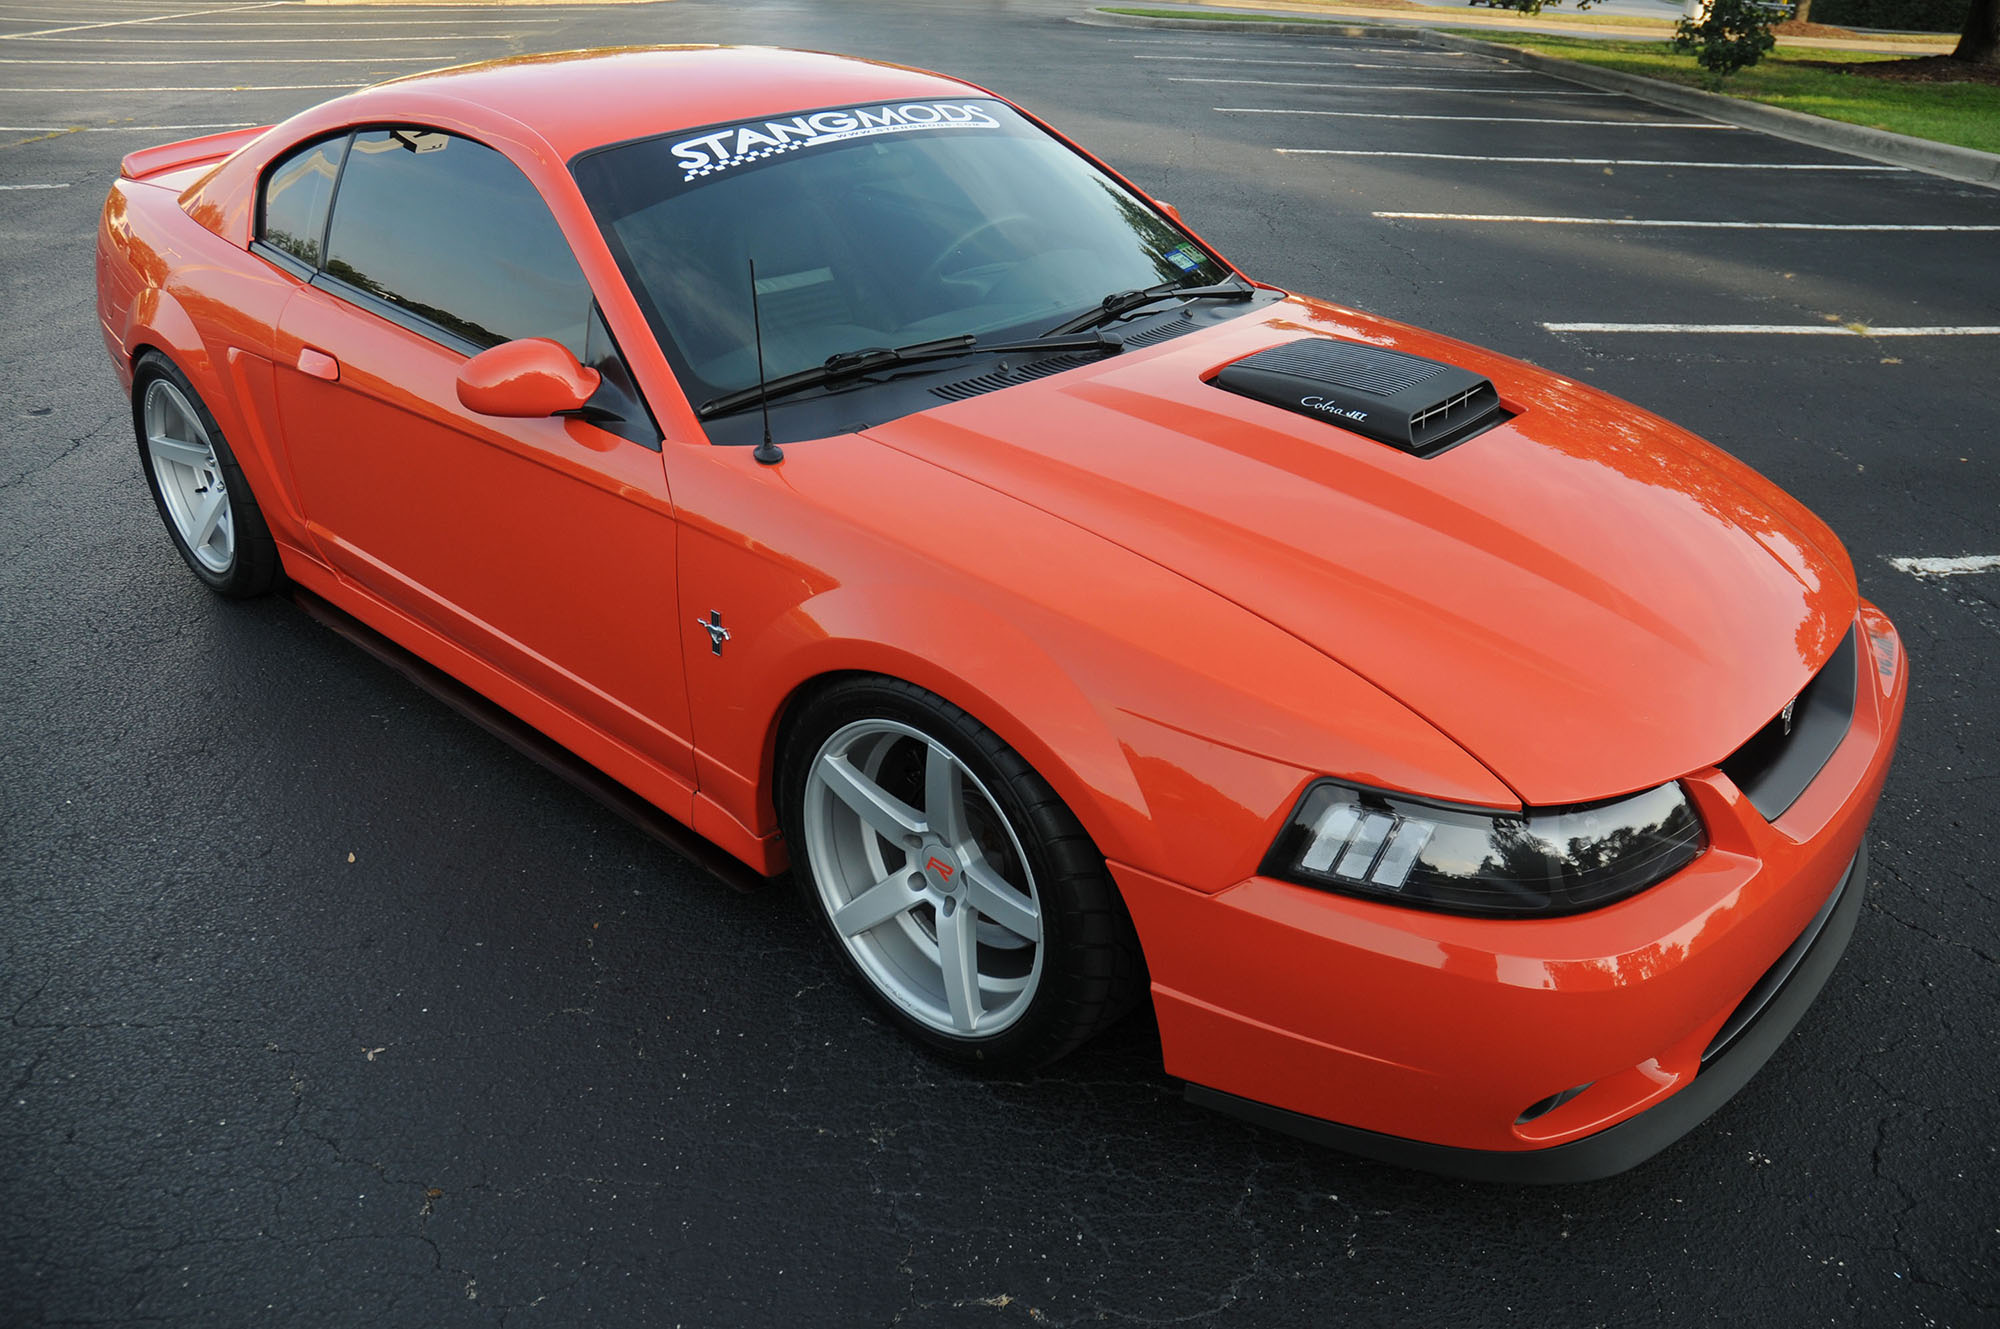 2004 Mustang Mach 1 front 3/4